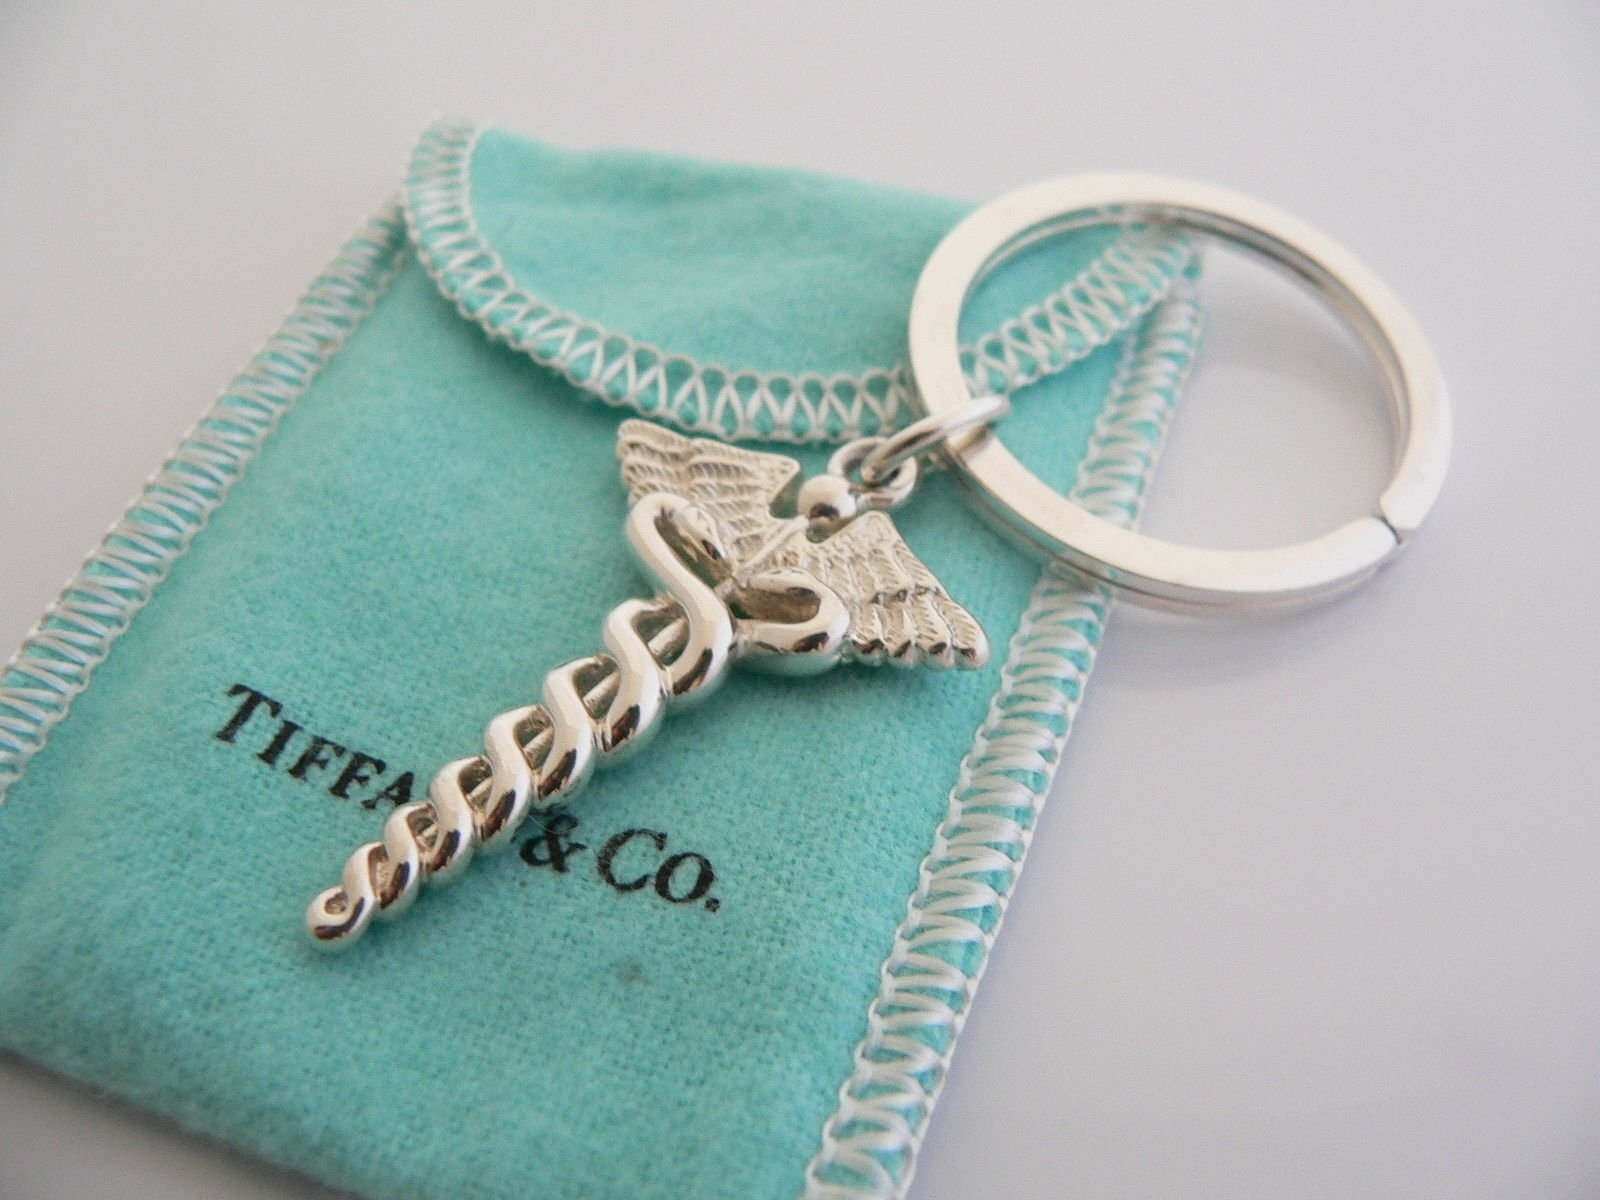 10 Unique Nursing School Graduation Gift Ideas beautiful tiffany co keychain great idea for grad nursing 2020